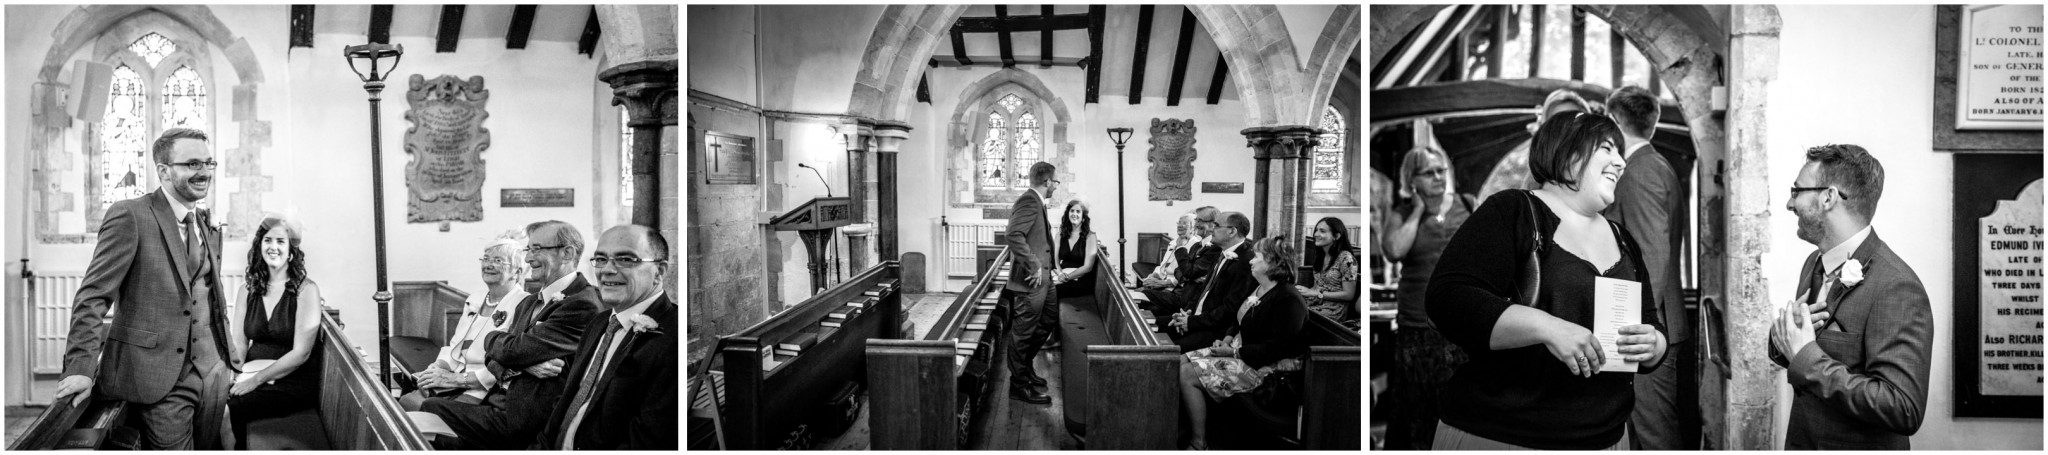 St Thomas a Becket Church Wedding Guests Arriving